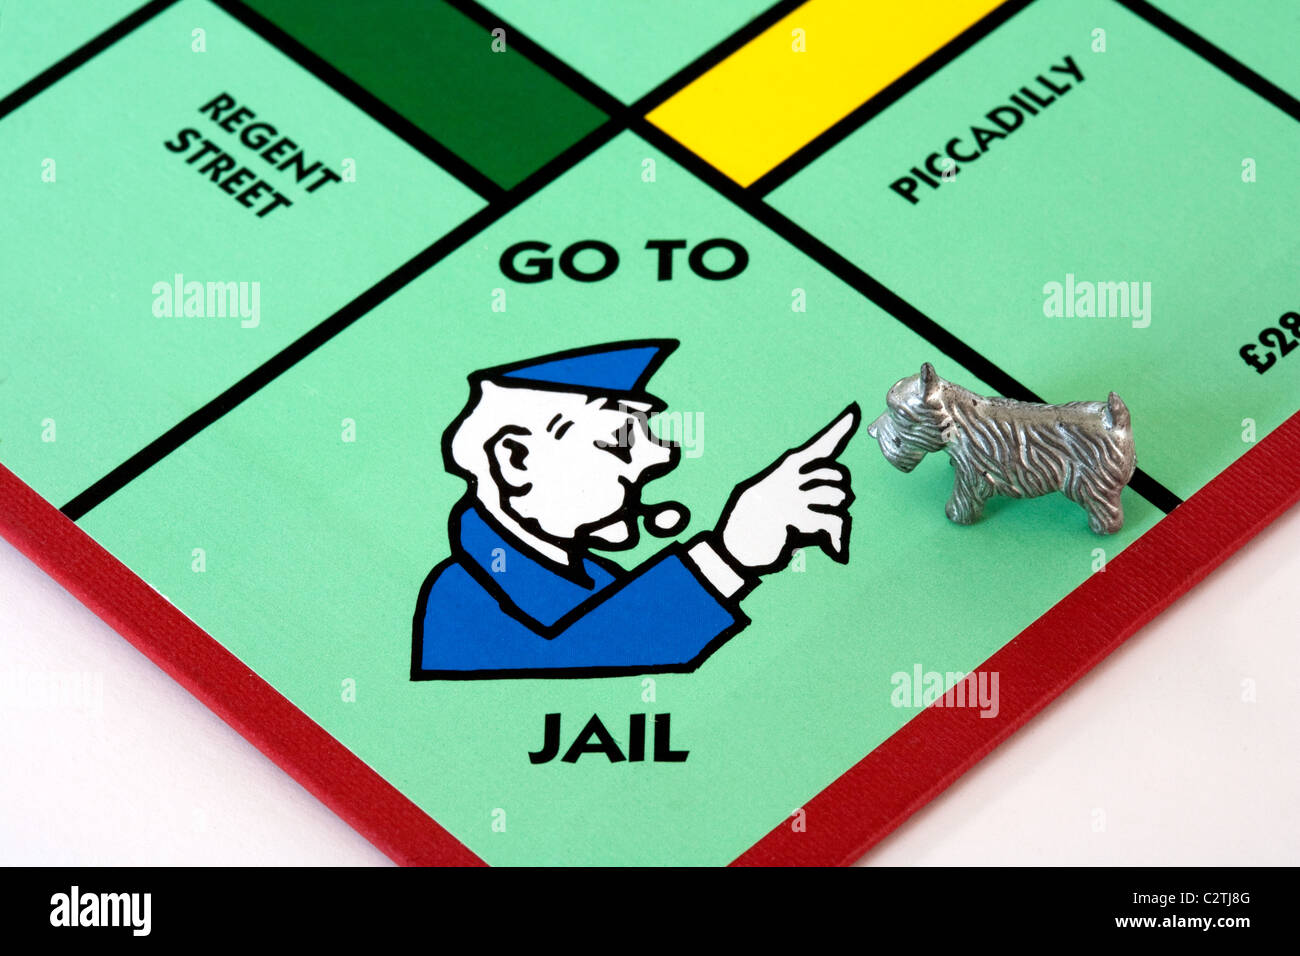 A dog piece on the 'Go to Jail' space on a monopoly game board UK - Stock Image